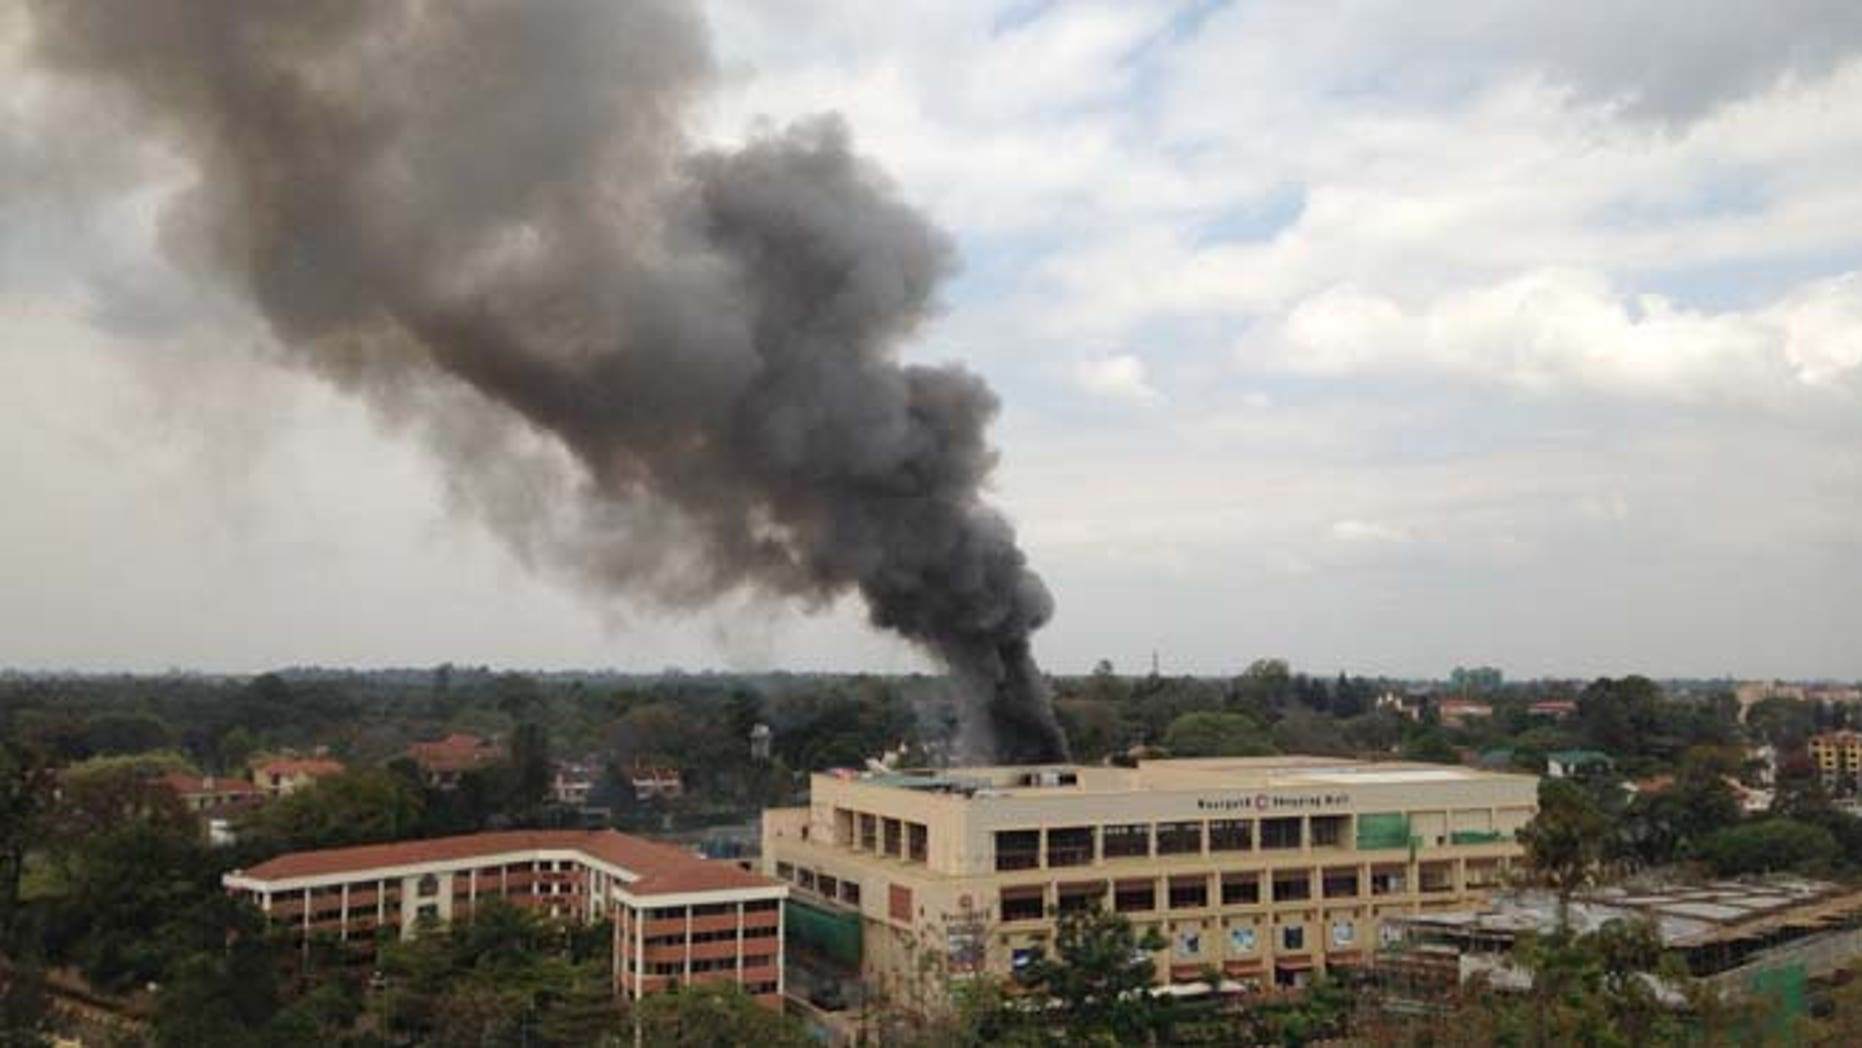 Sept. 23, 2013: In this file photo, heavy smoke rises after multiple large blasts rocked the Westgate Mall in Nairobi, Kenya. (AP)